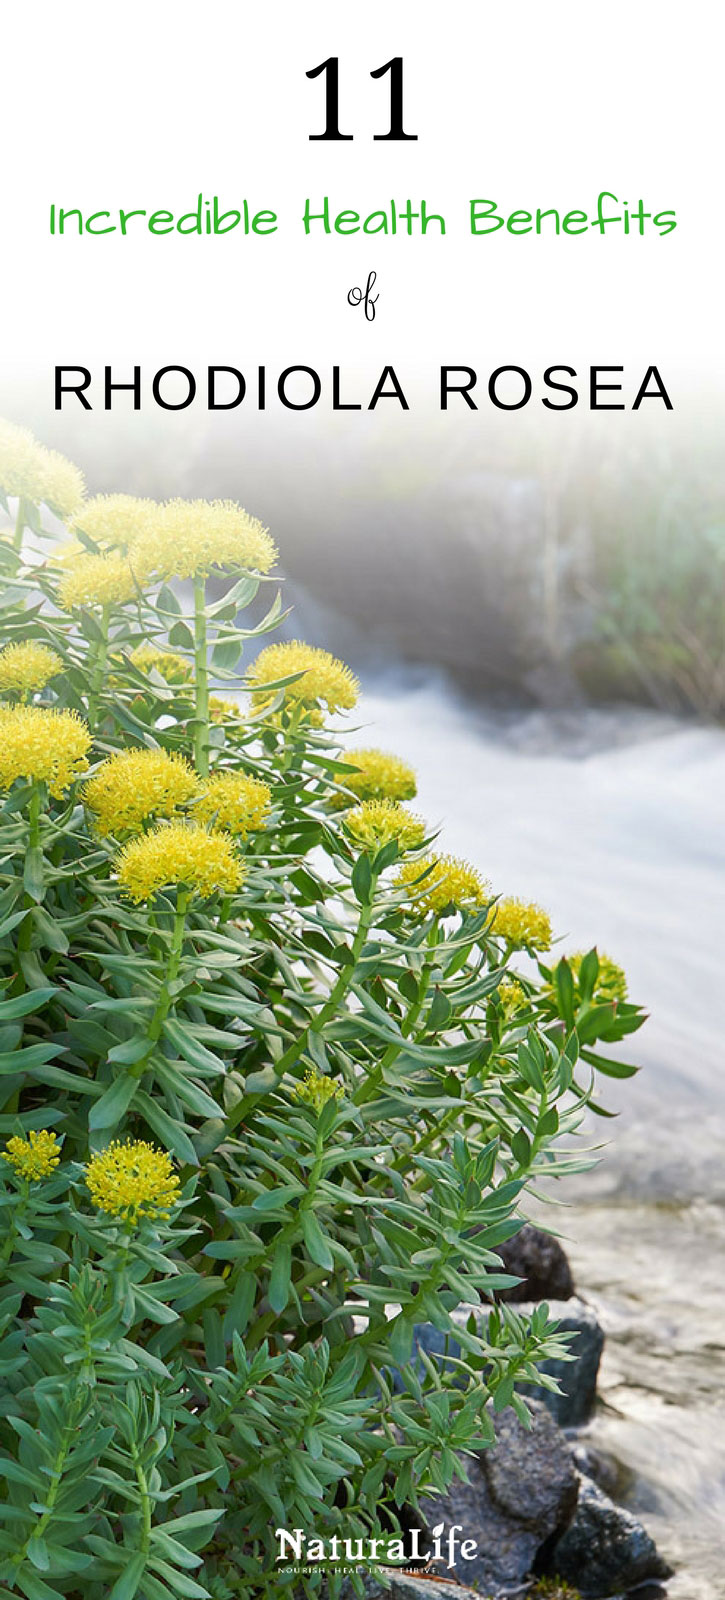 Rhodiola rosea is a powerful adaptogenic herb that's packed with a wide range of health benefits. Science has shown that it's effective for increasing your energy, fighting fatigue, alleviating stress and depression, increasing your physical performance, and so much more. Click to learn more about how rhodiola can benefit you.